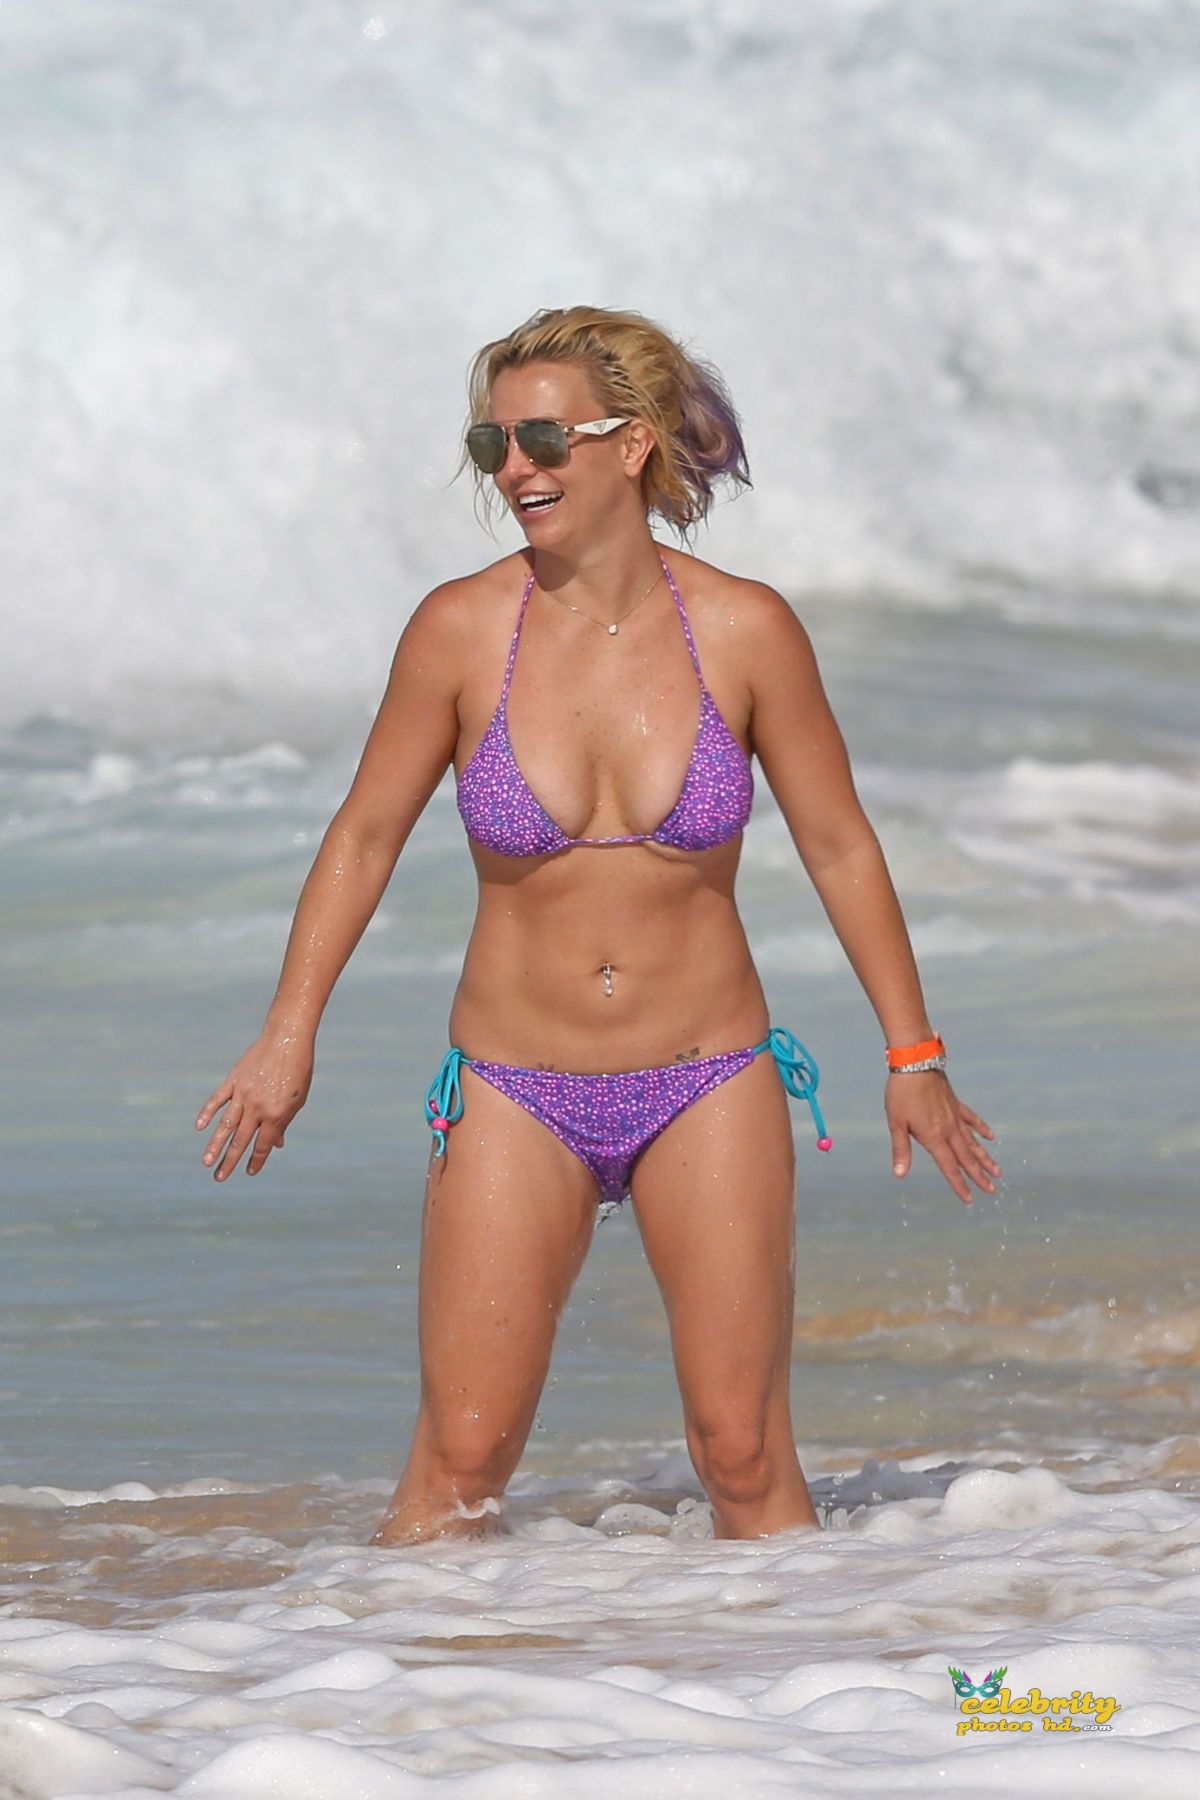 britney-spears-in-bikini-at-a-beach-in-hawaii-07-23-2015_12